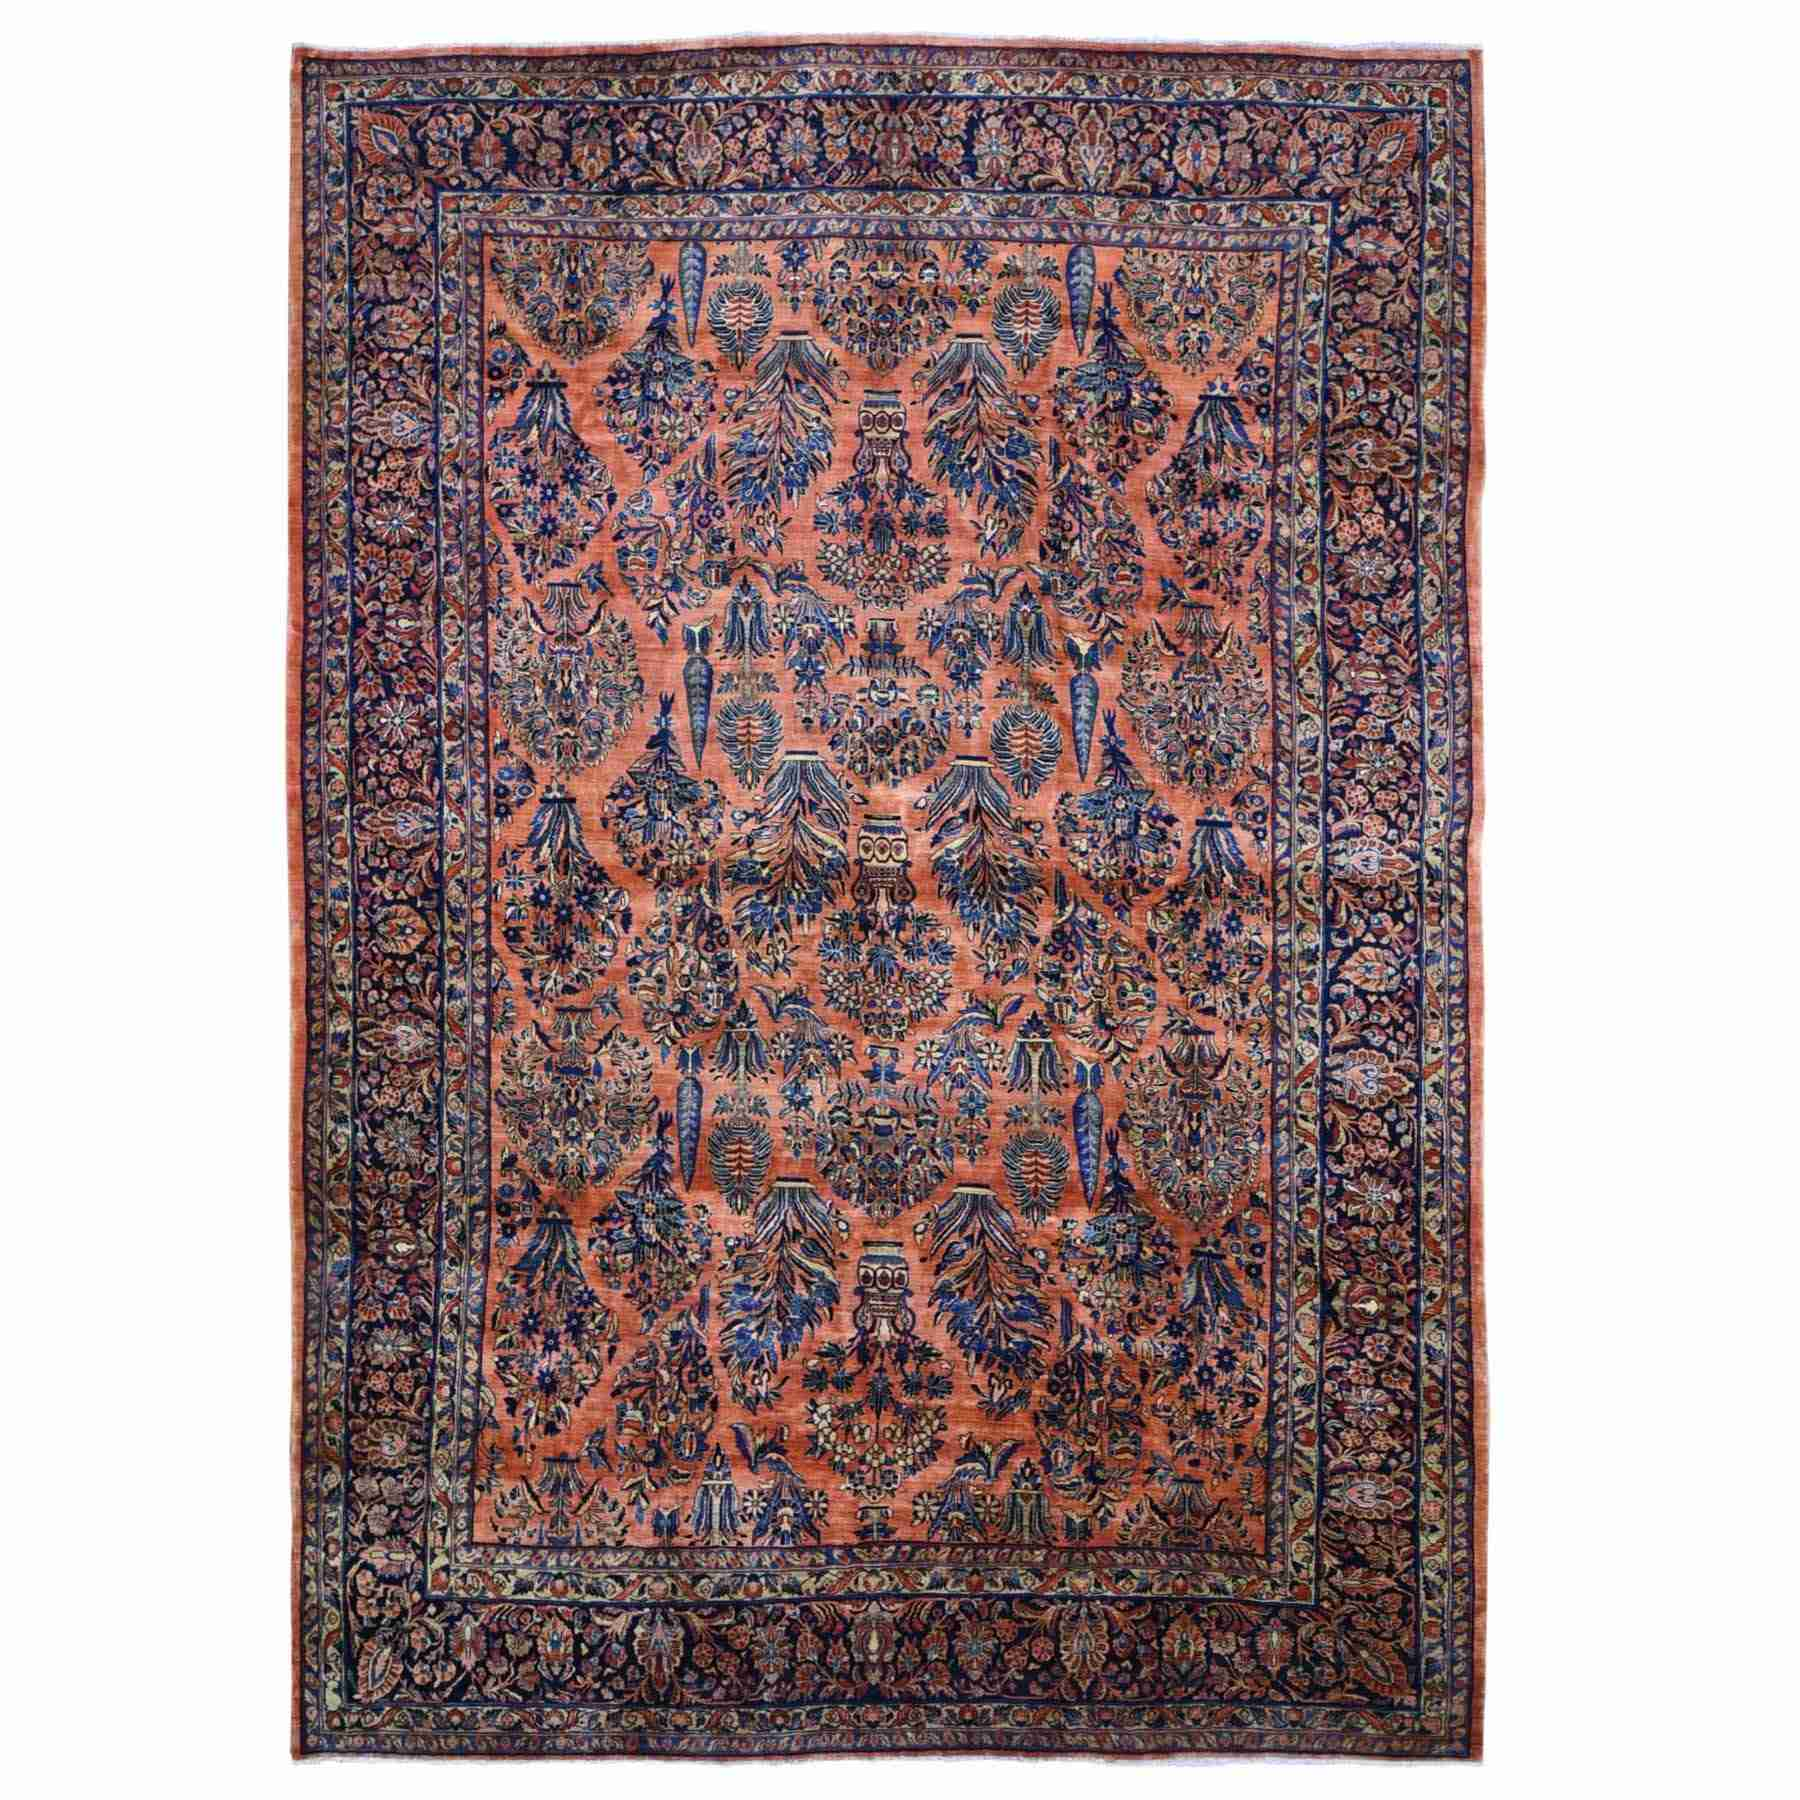 Antique-Hand-Knotted-Rug-296465